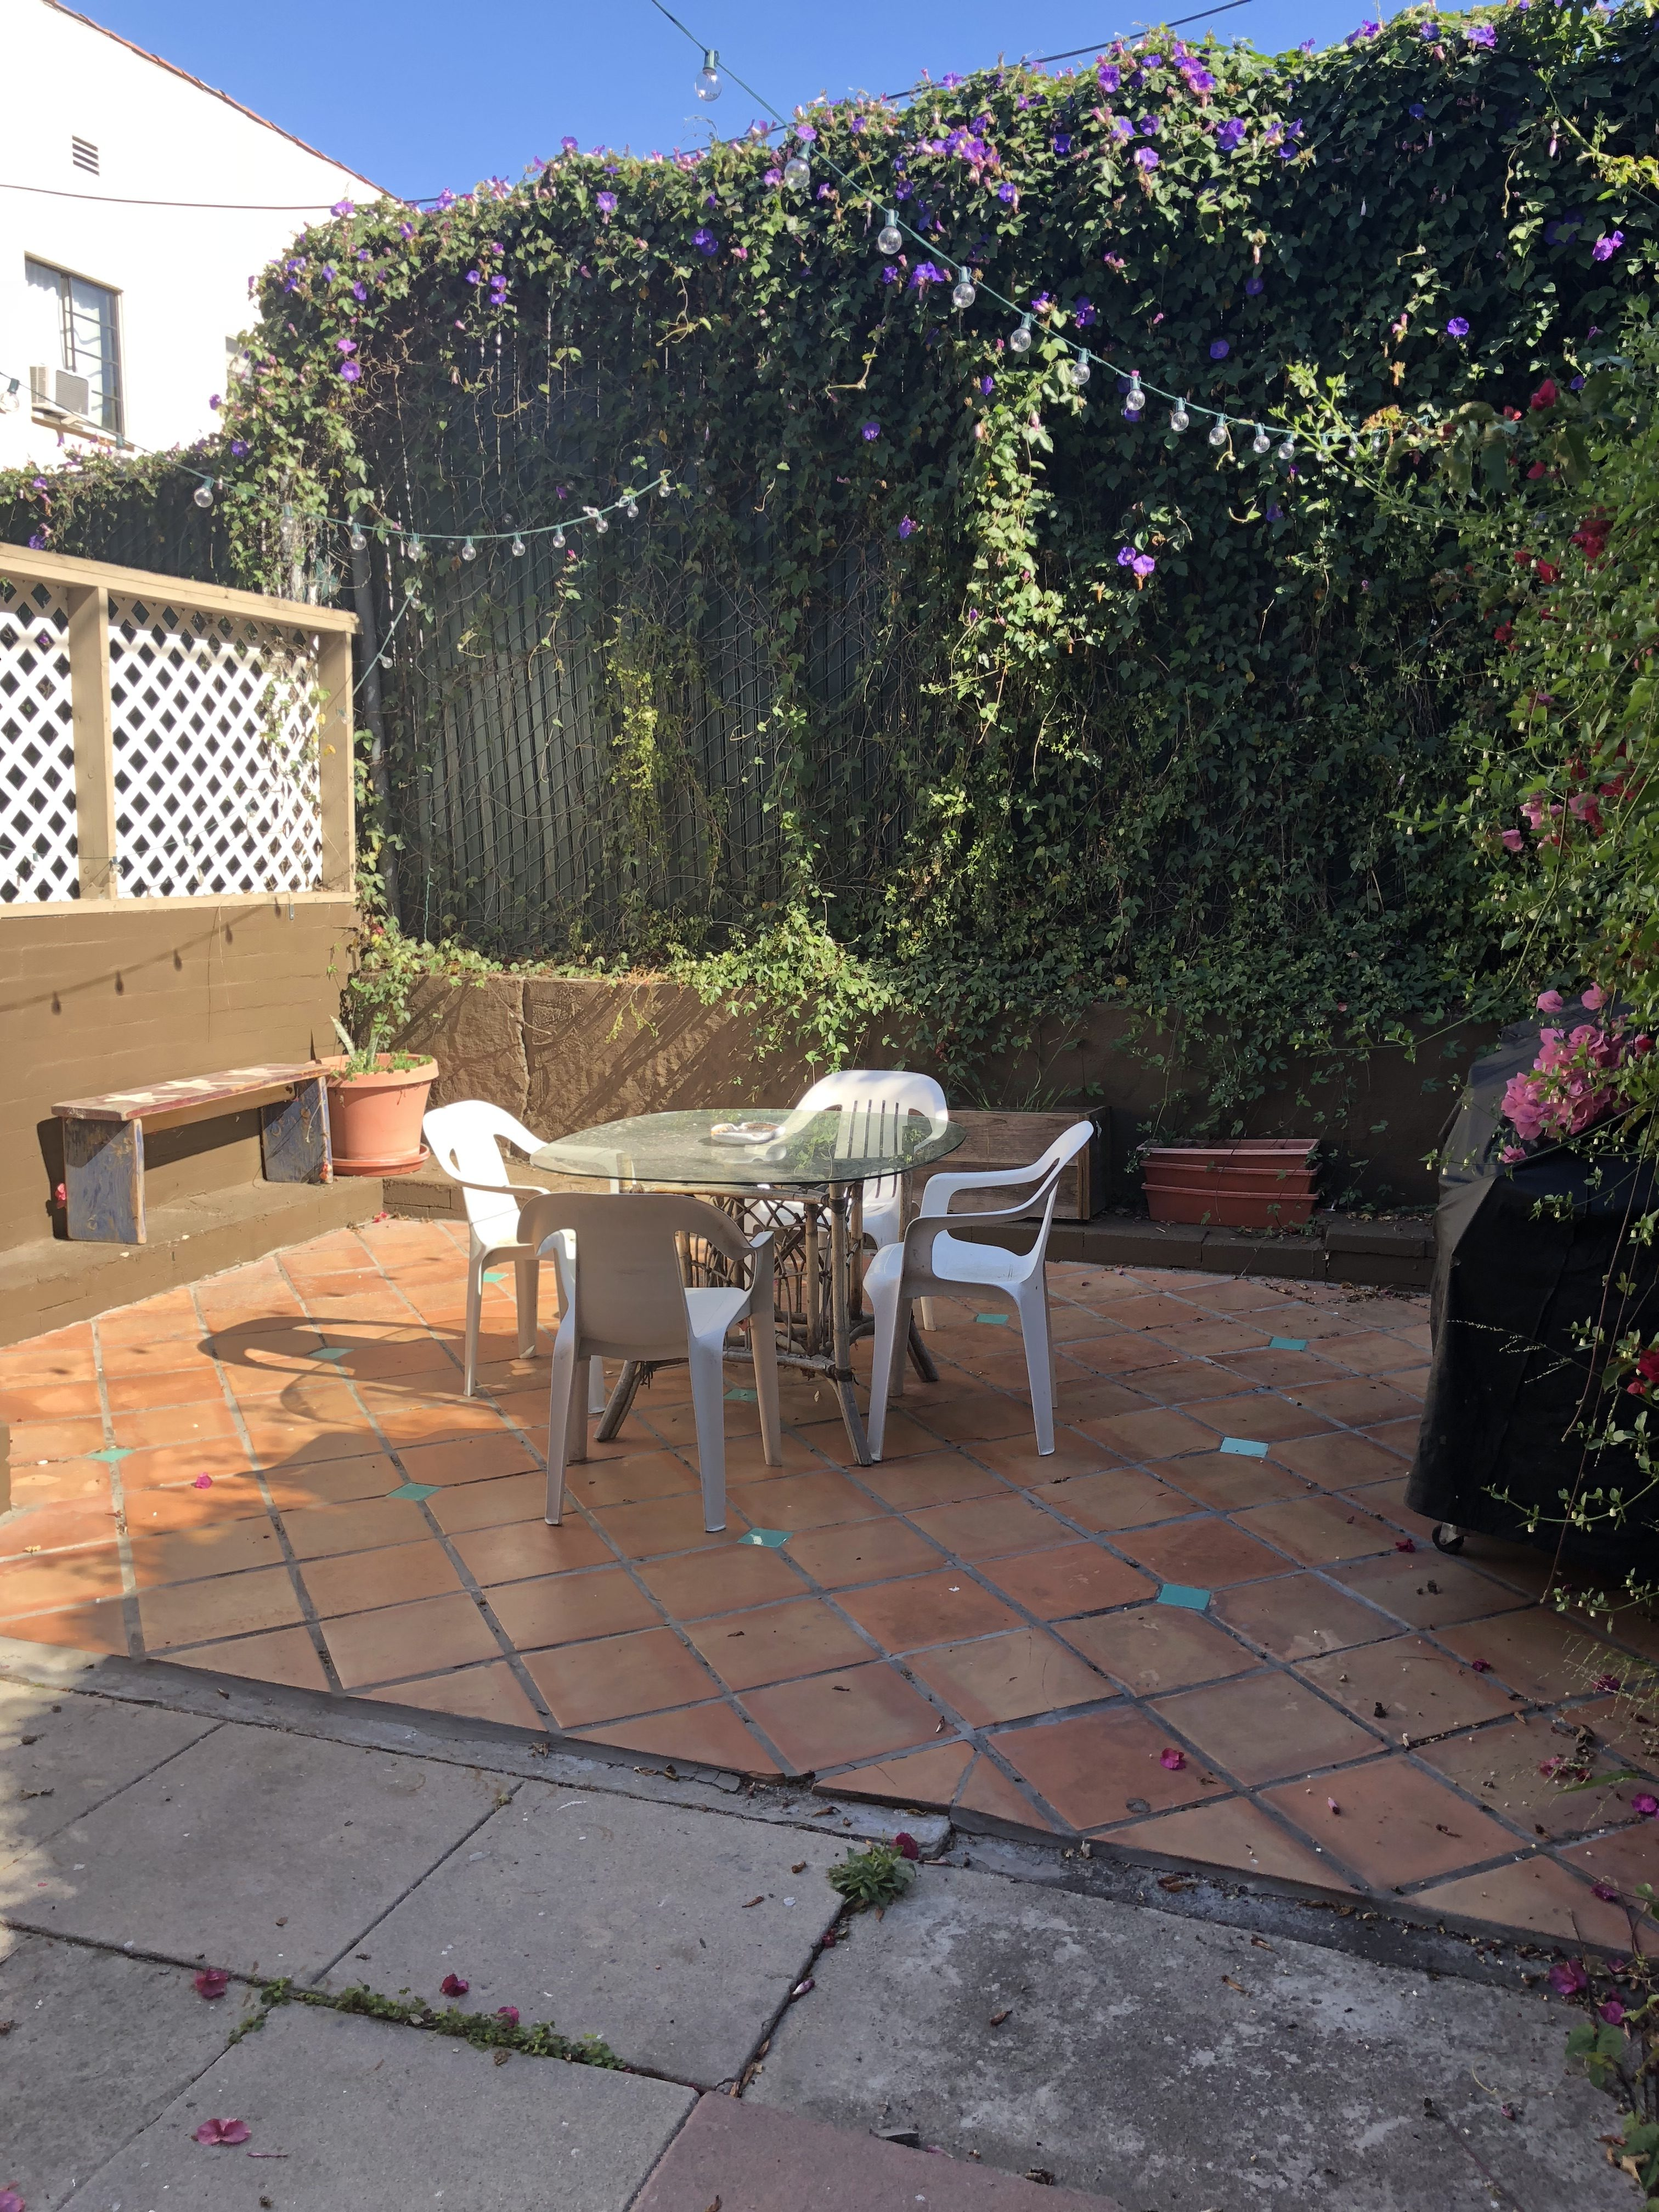 Available Apartments » 2266 Hse Back Patio Yard